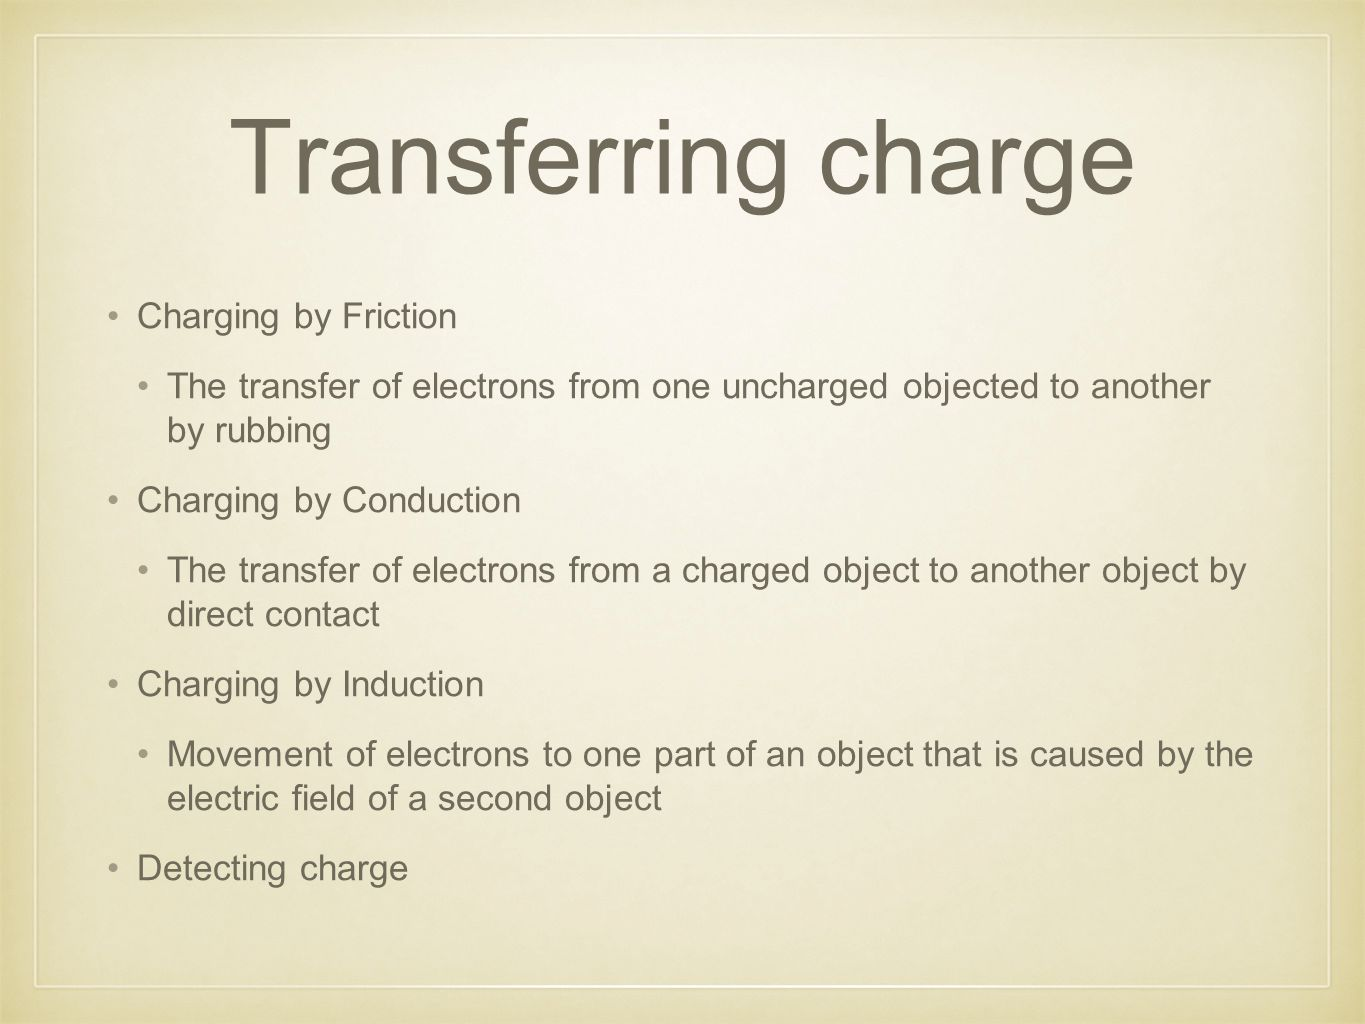 Transferring charge Charging by Friction The transfer of electrons from one uncharged objected to another by rubbing Charging by Conduction The transfer of electrons from a charged object to another object by direct contact Charging by Induction Movement of electrons to one part of an object that is caused by the electric field of a second object Detecting charge